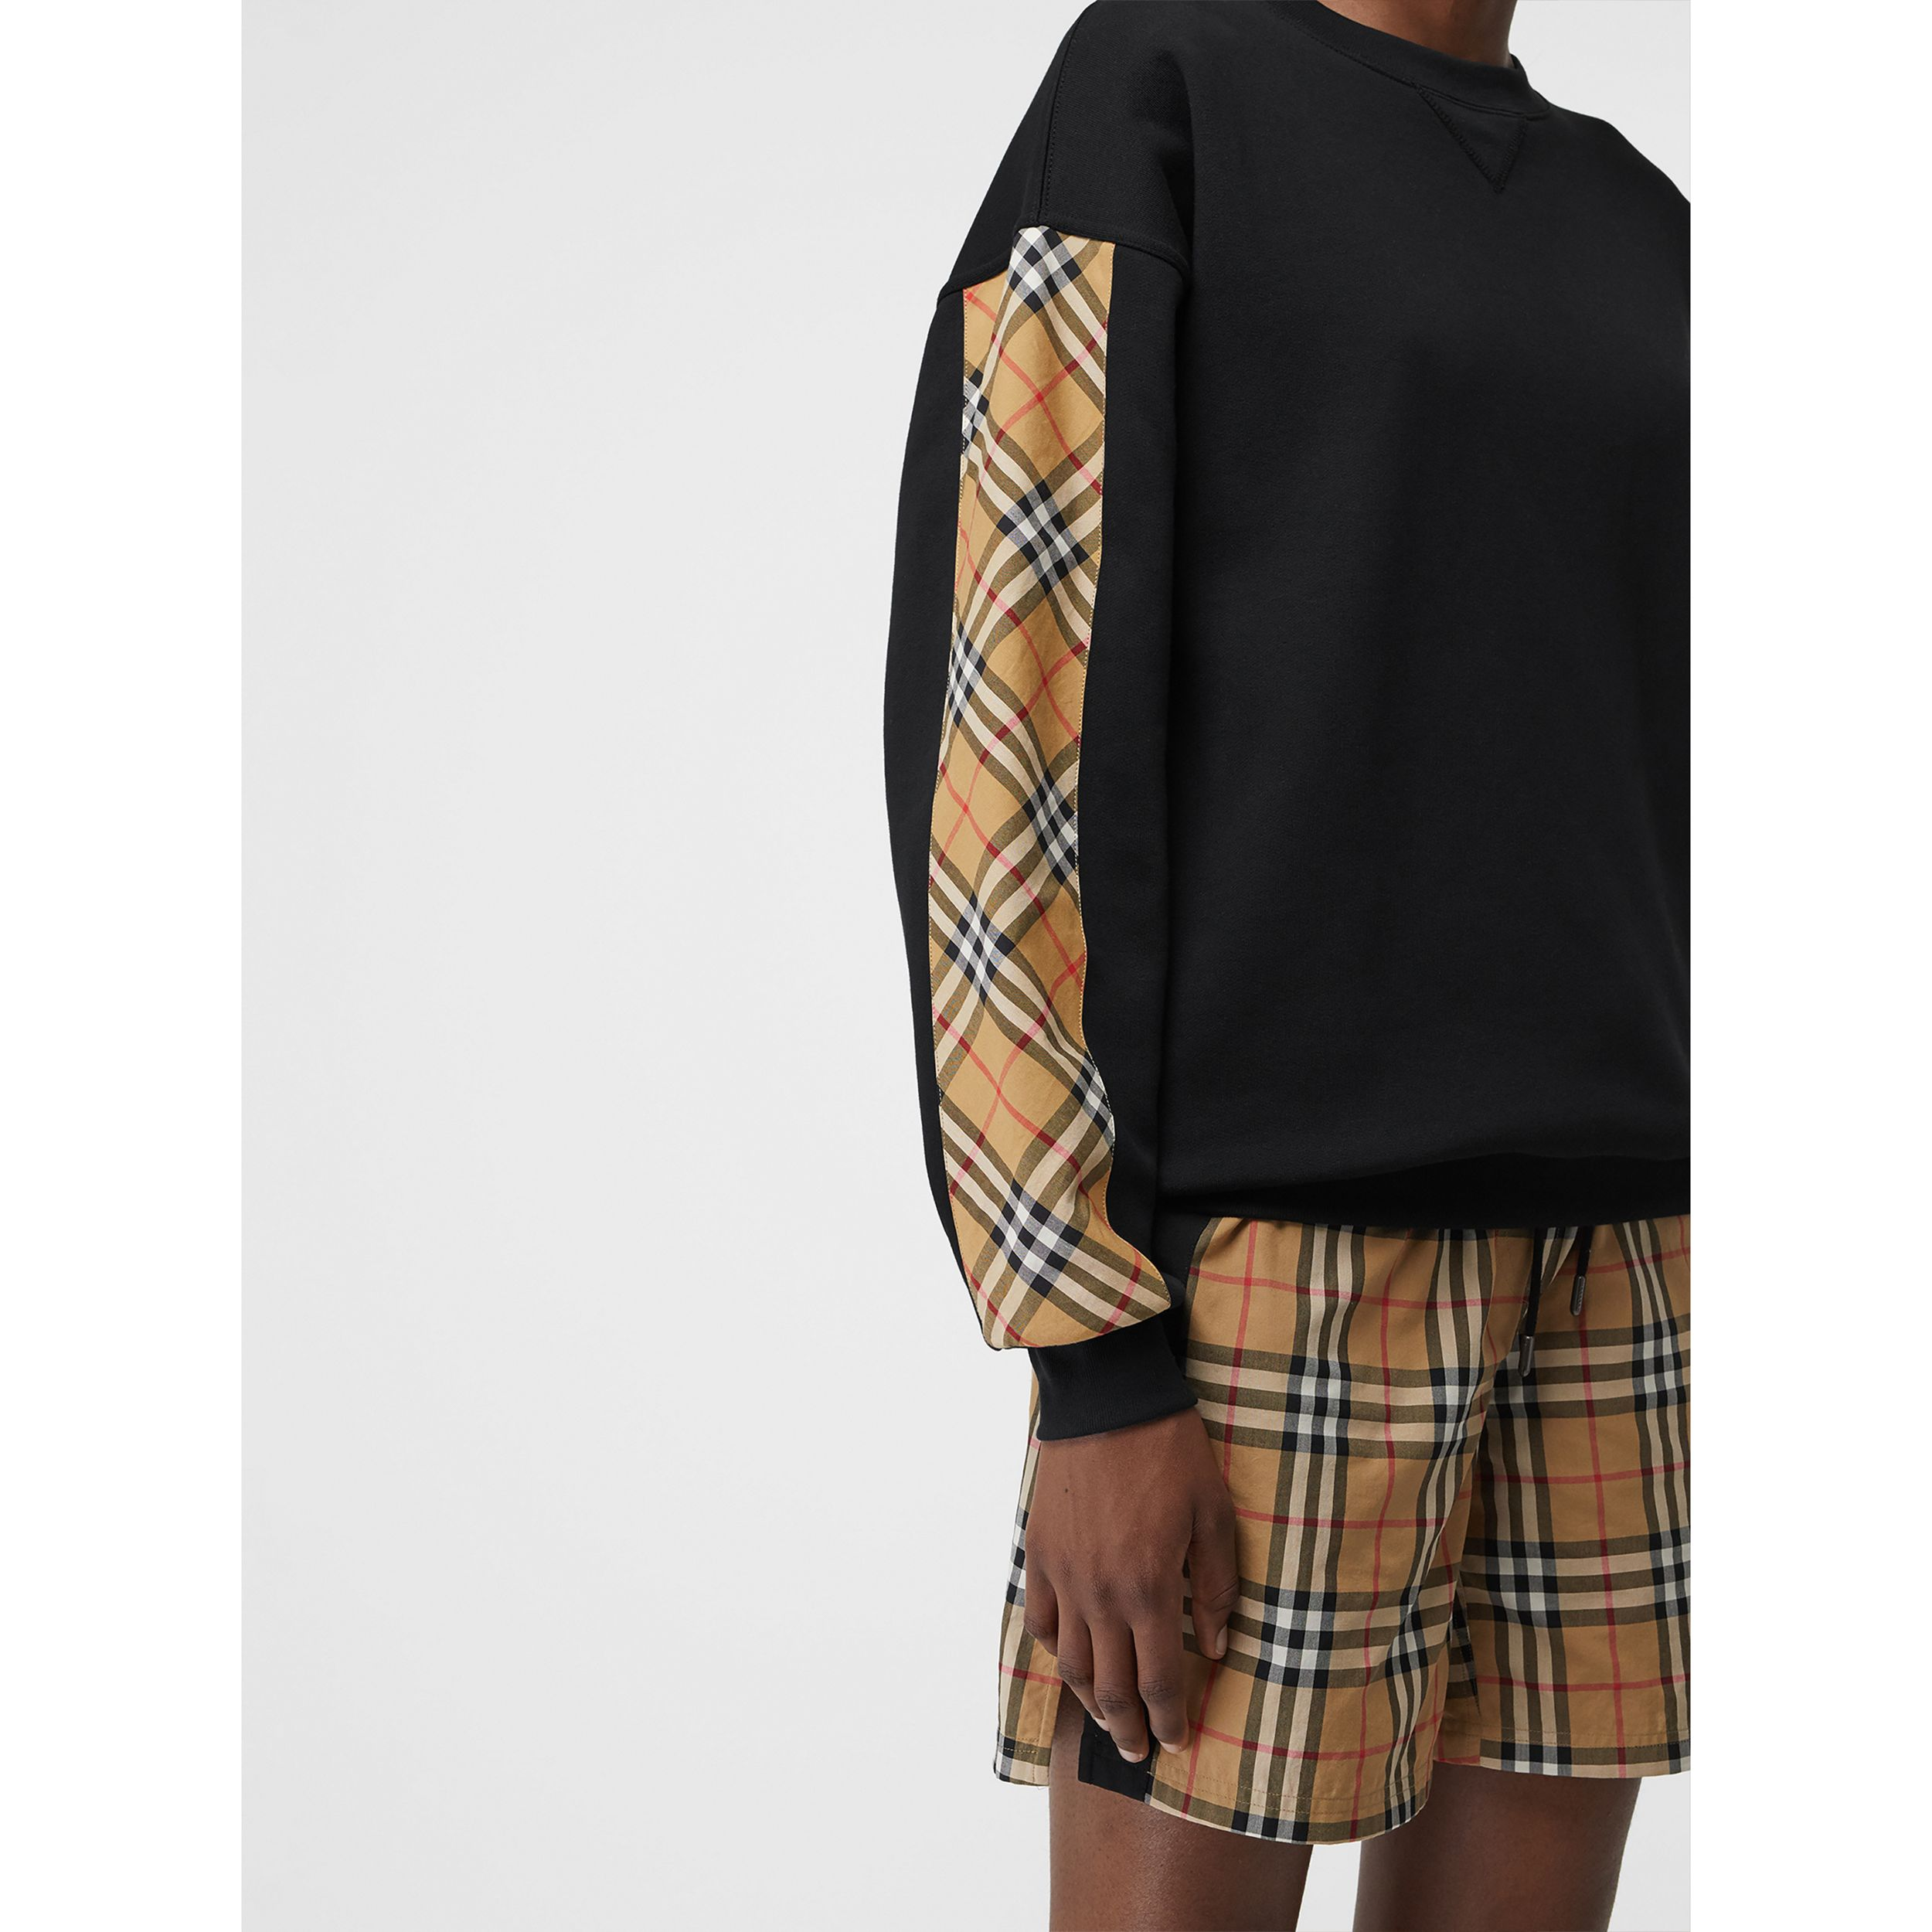 Vintage Check Detail Cotton Blend Sweatshirt in Black - Women | Burberry United States - 2